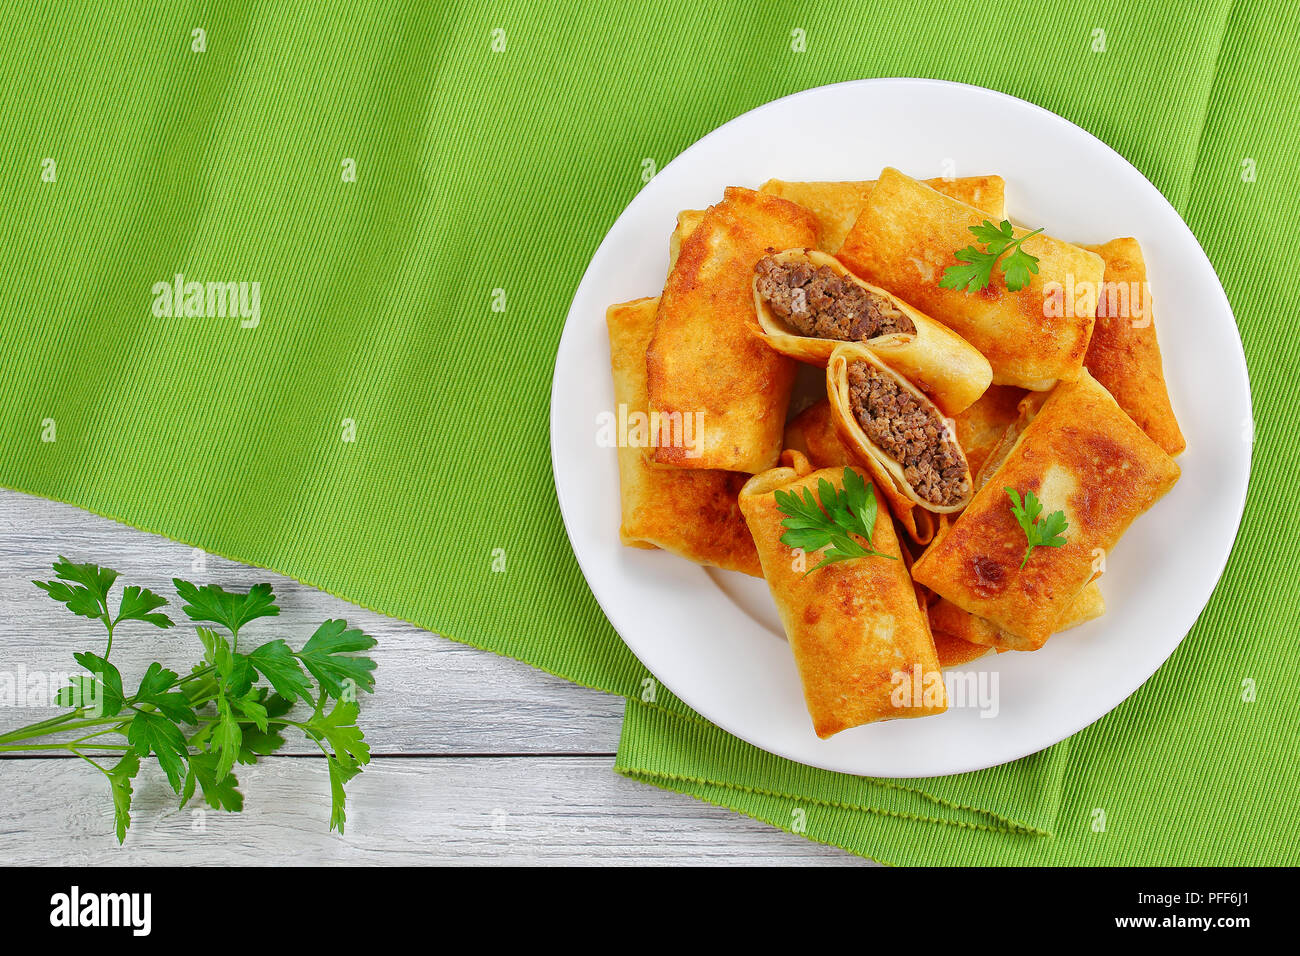 fried in olive oil delicious Crispy and hot Crepes filled with minced liver and rolled up on white plate on old wooden table, view from above Stock Photo